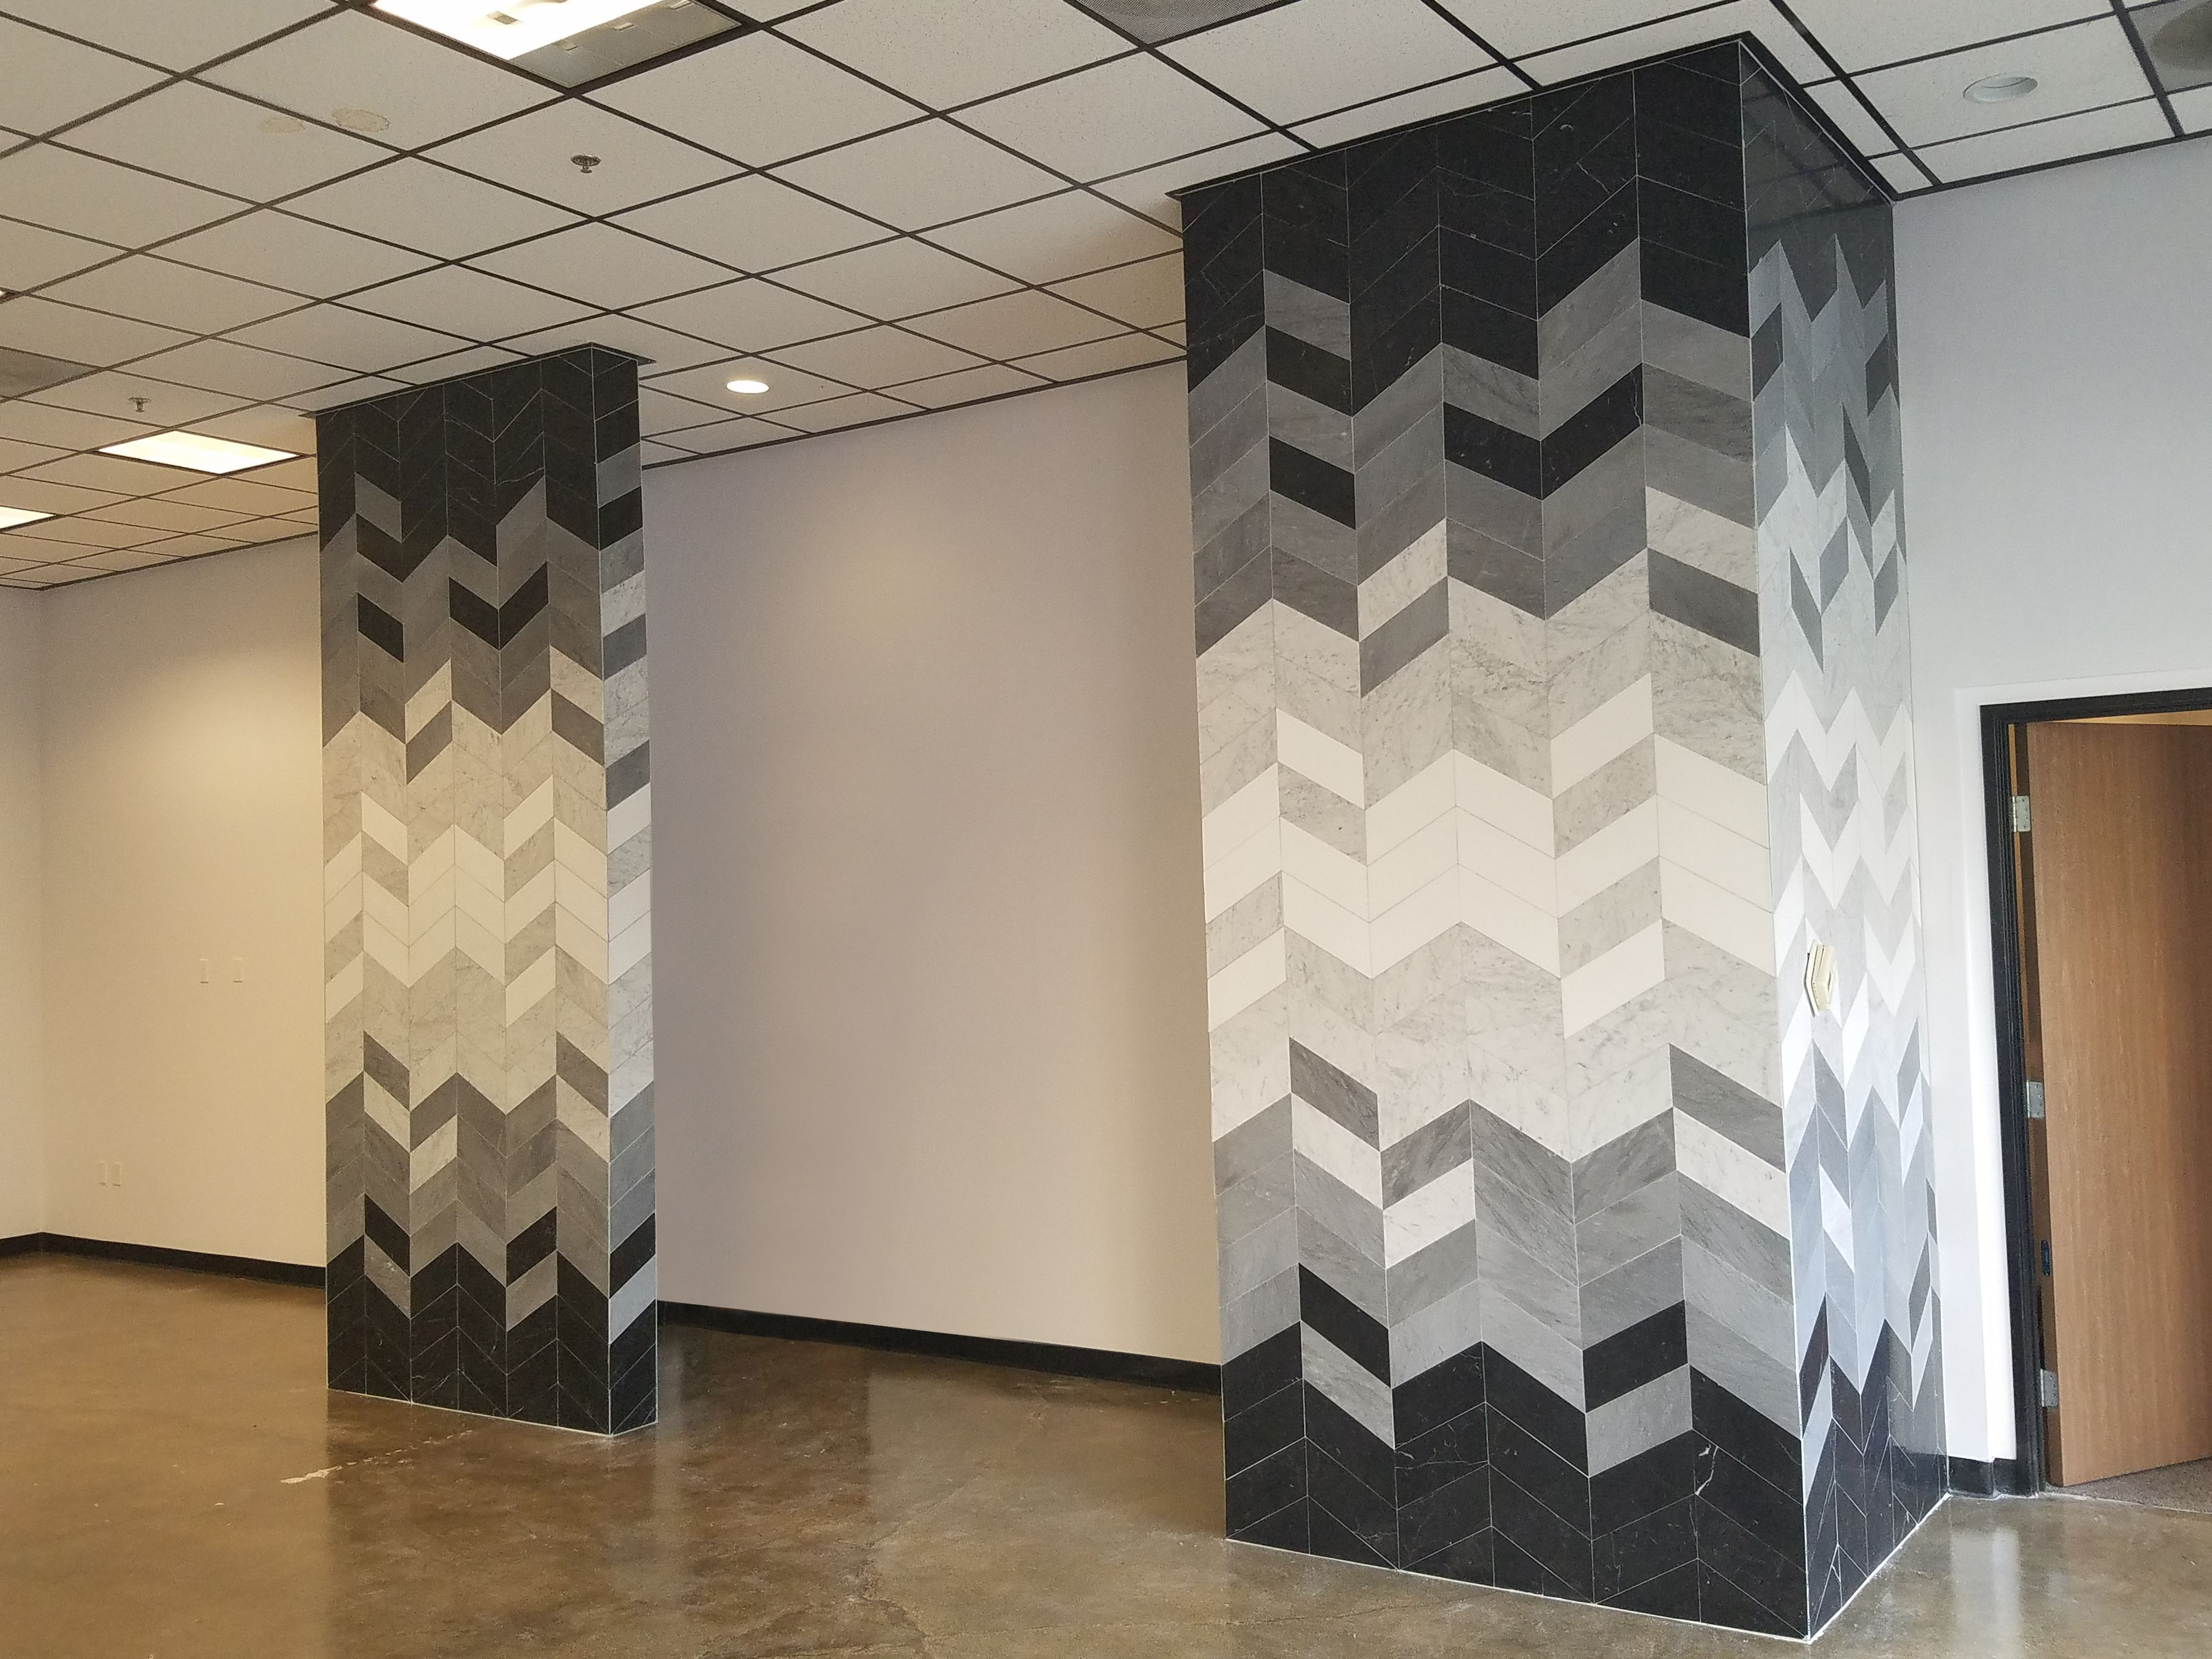 Tile Design Geometric Wall Feature Customization Possible Wowza Stone Products Unlimited Inc Anaheim